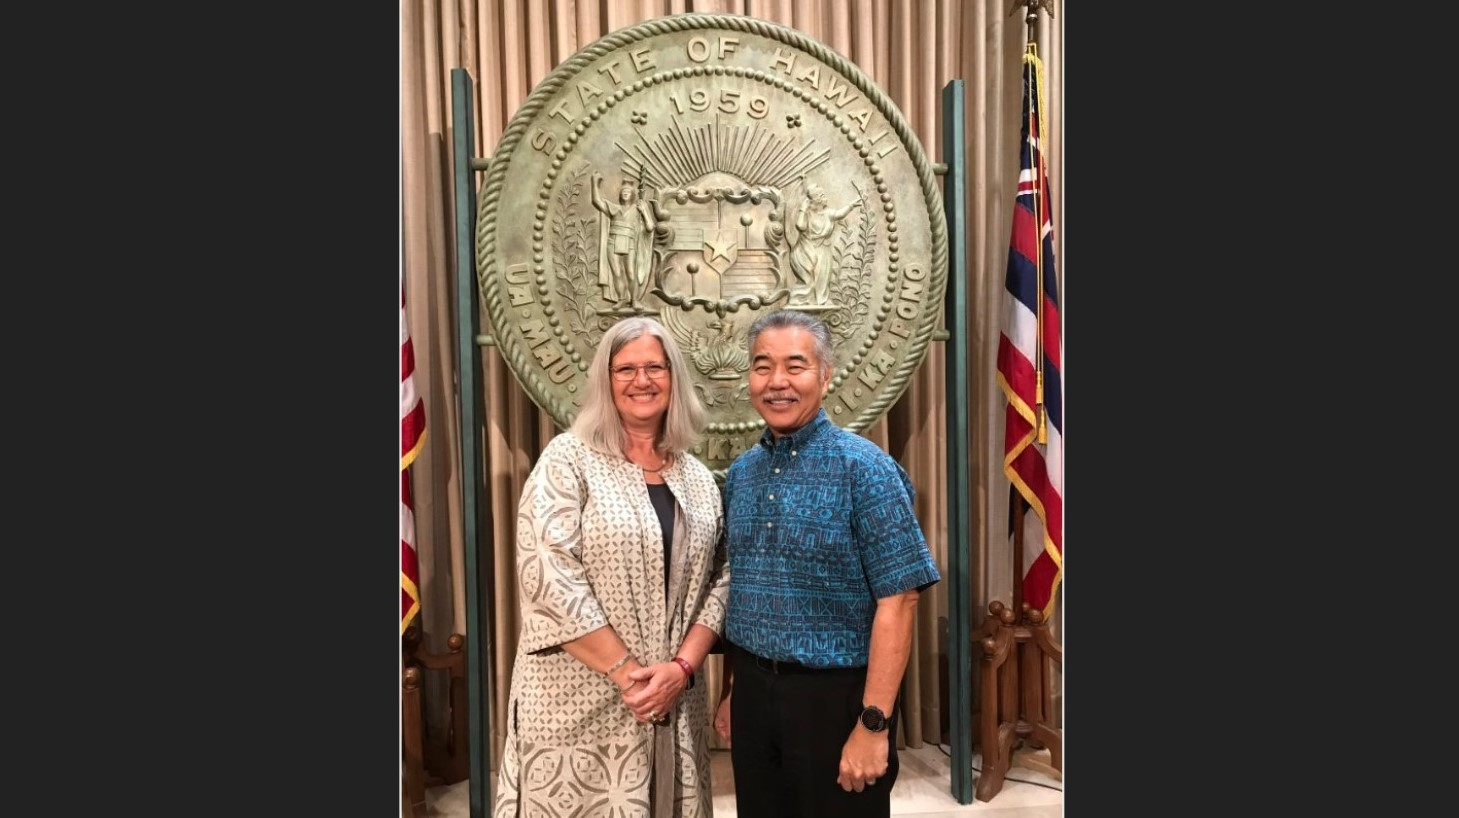 Chancellor Irwin and Gov. Ige stand for photo under state seal.